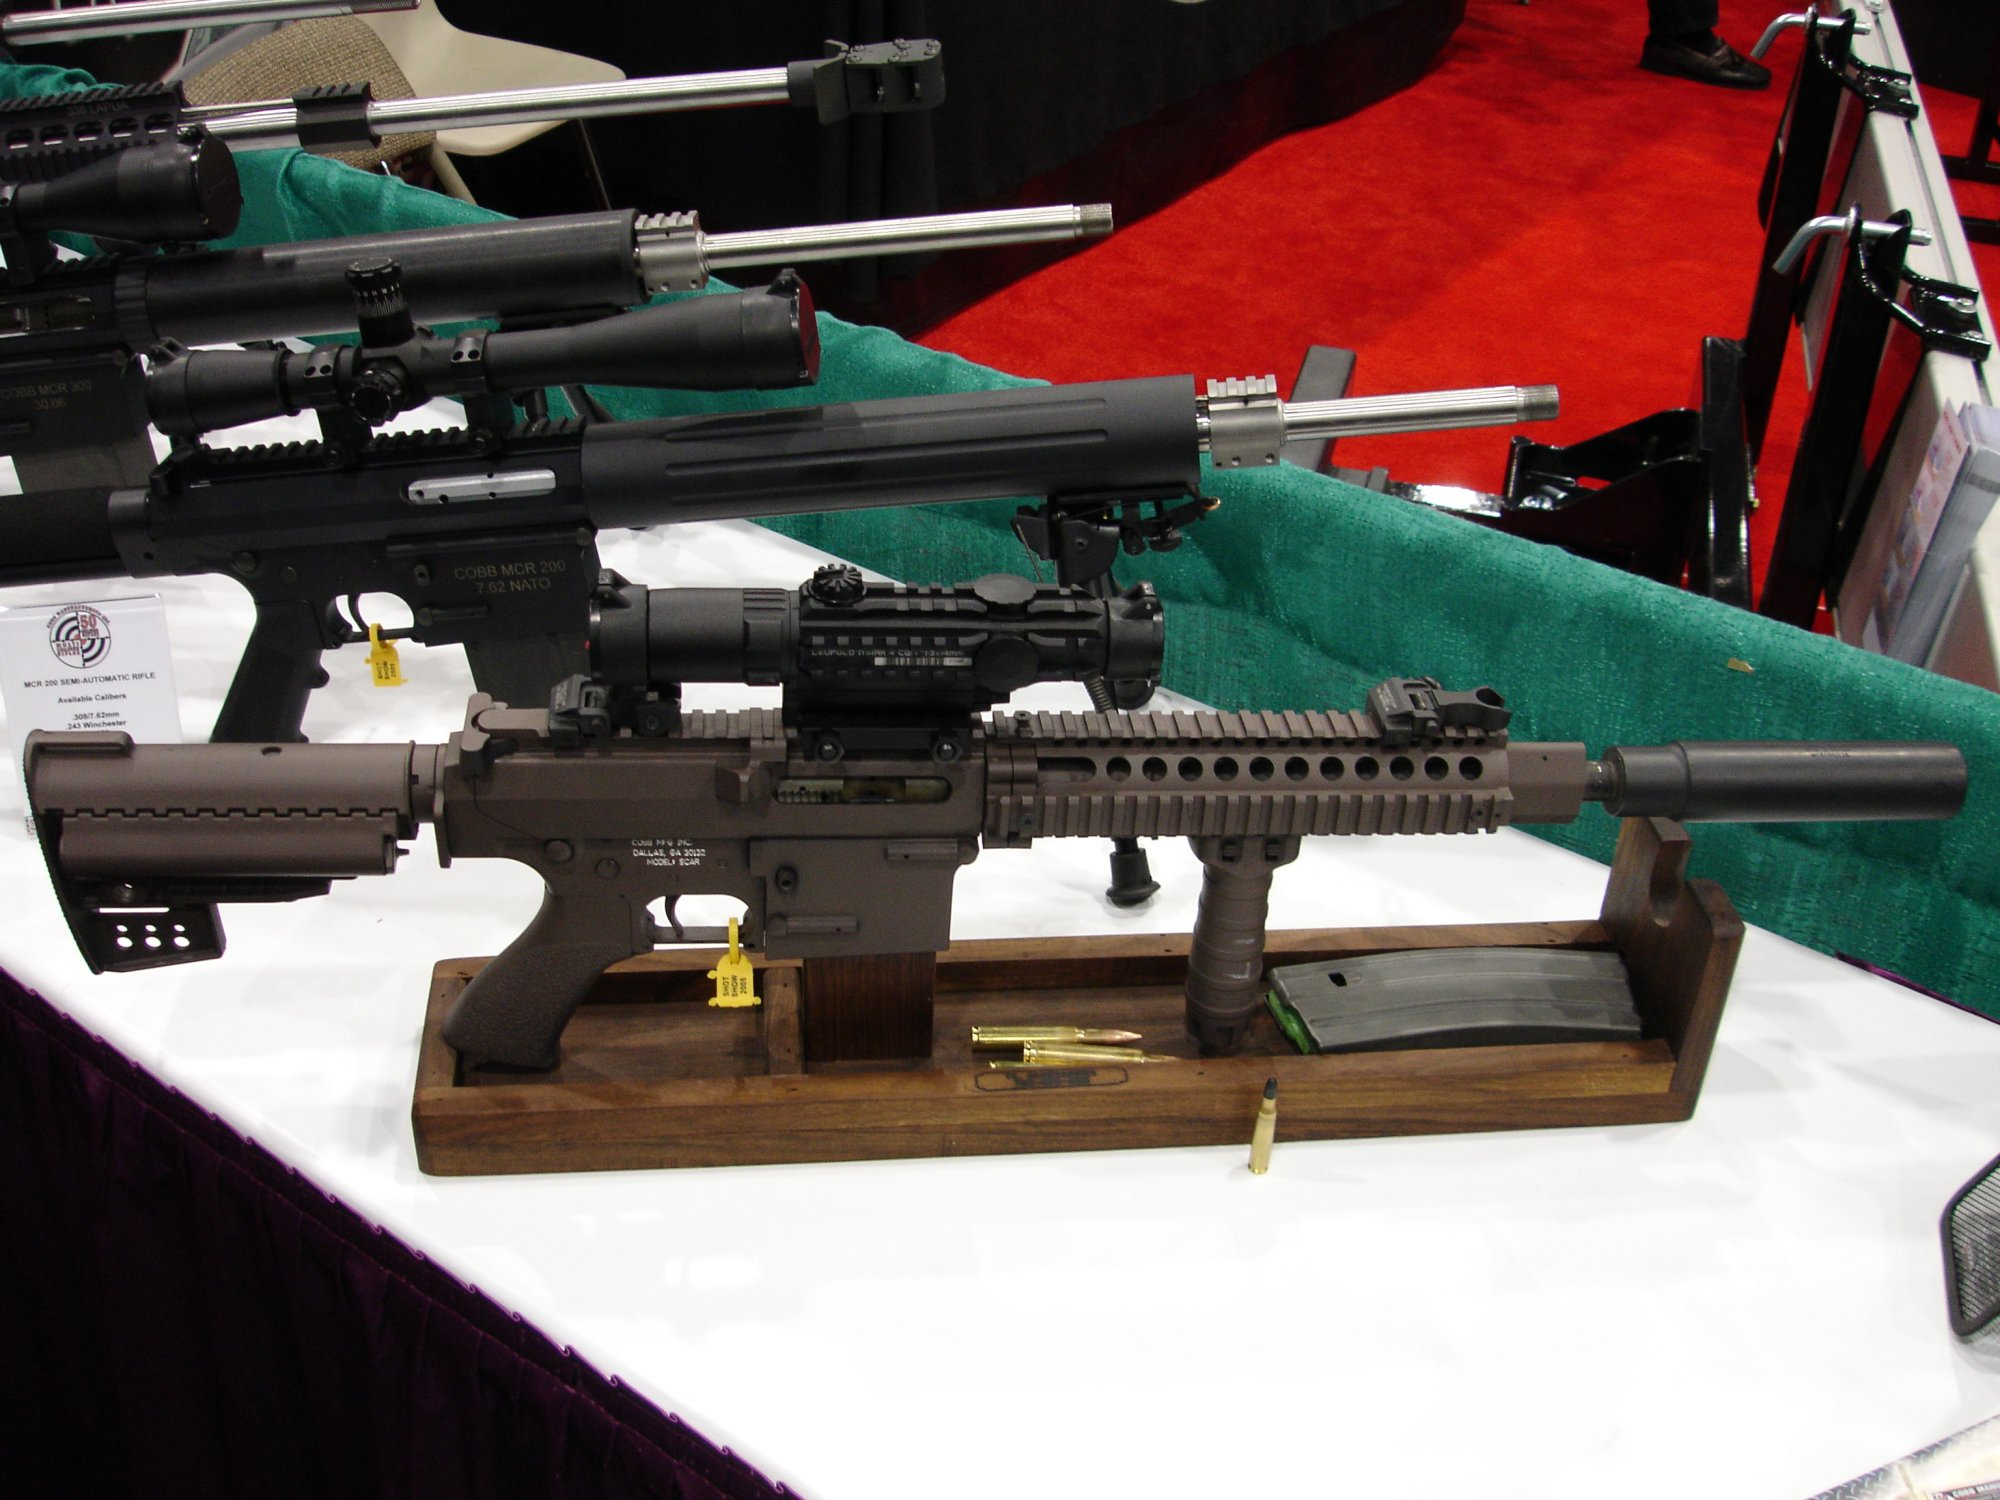 CobbMCR SCARprototype.308 4 <!  :en  >Cobb SCAR Candidate/MCR Prototype Weapons at SHOT Show 2005<!  :  >